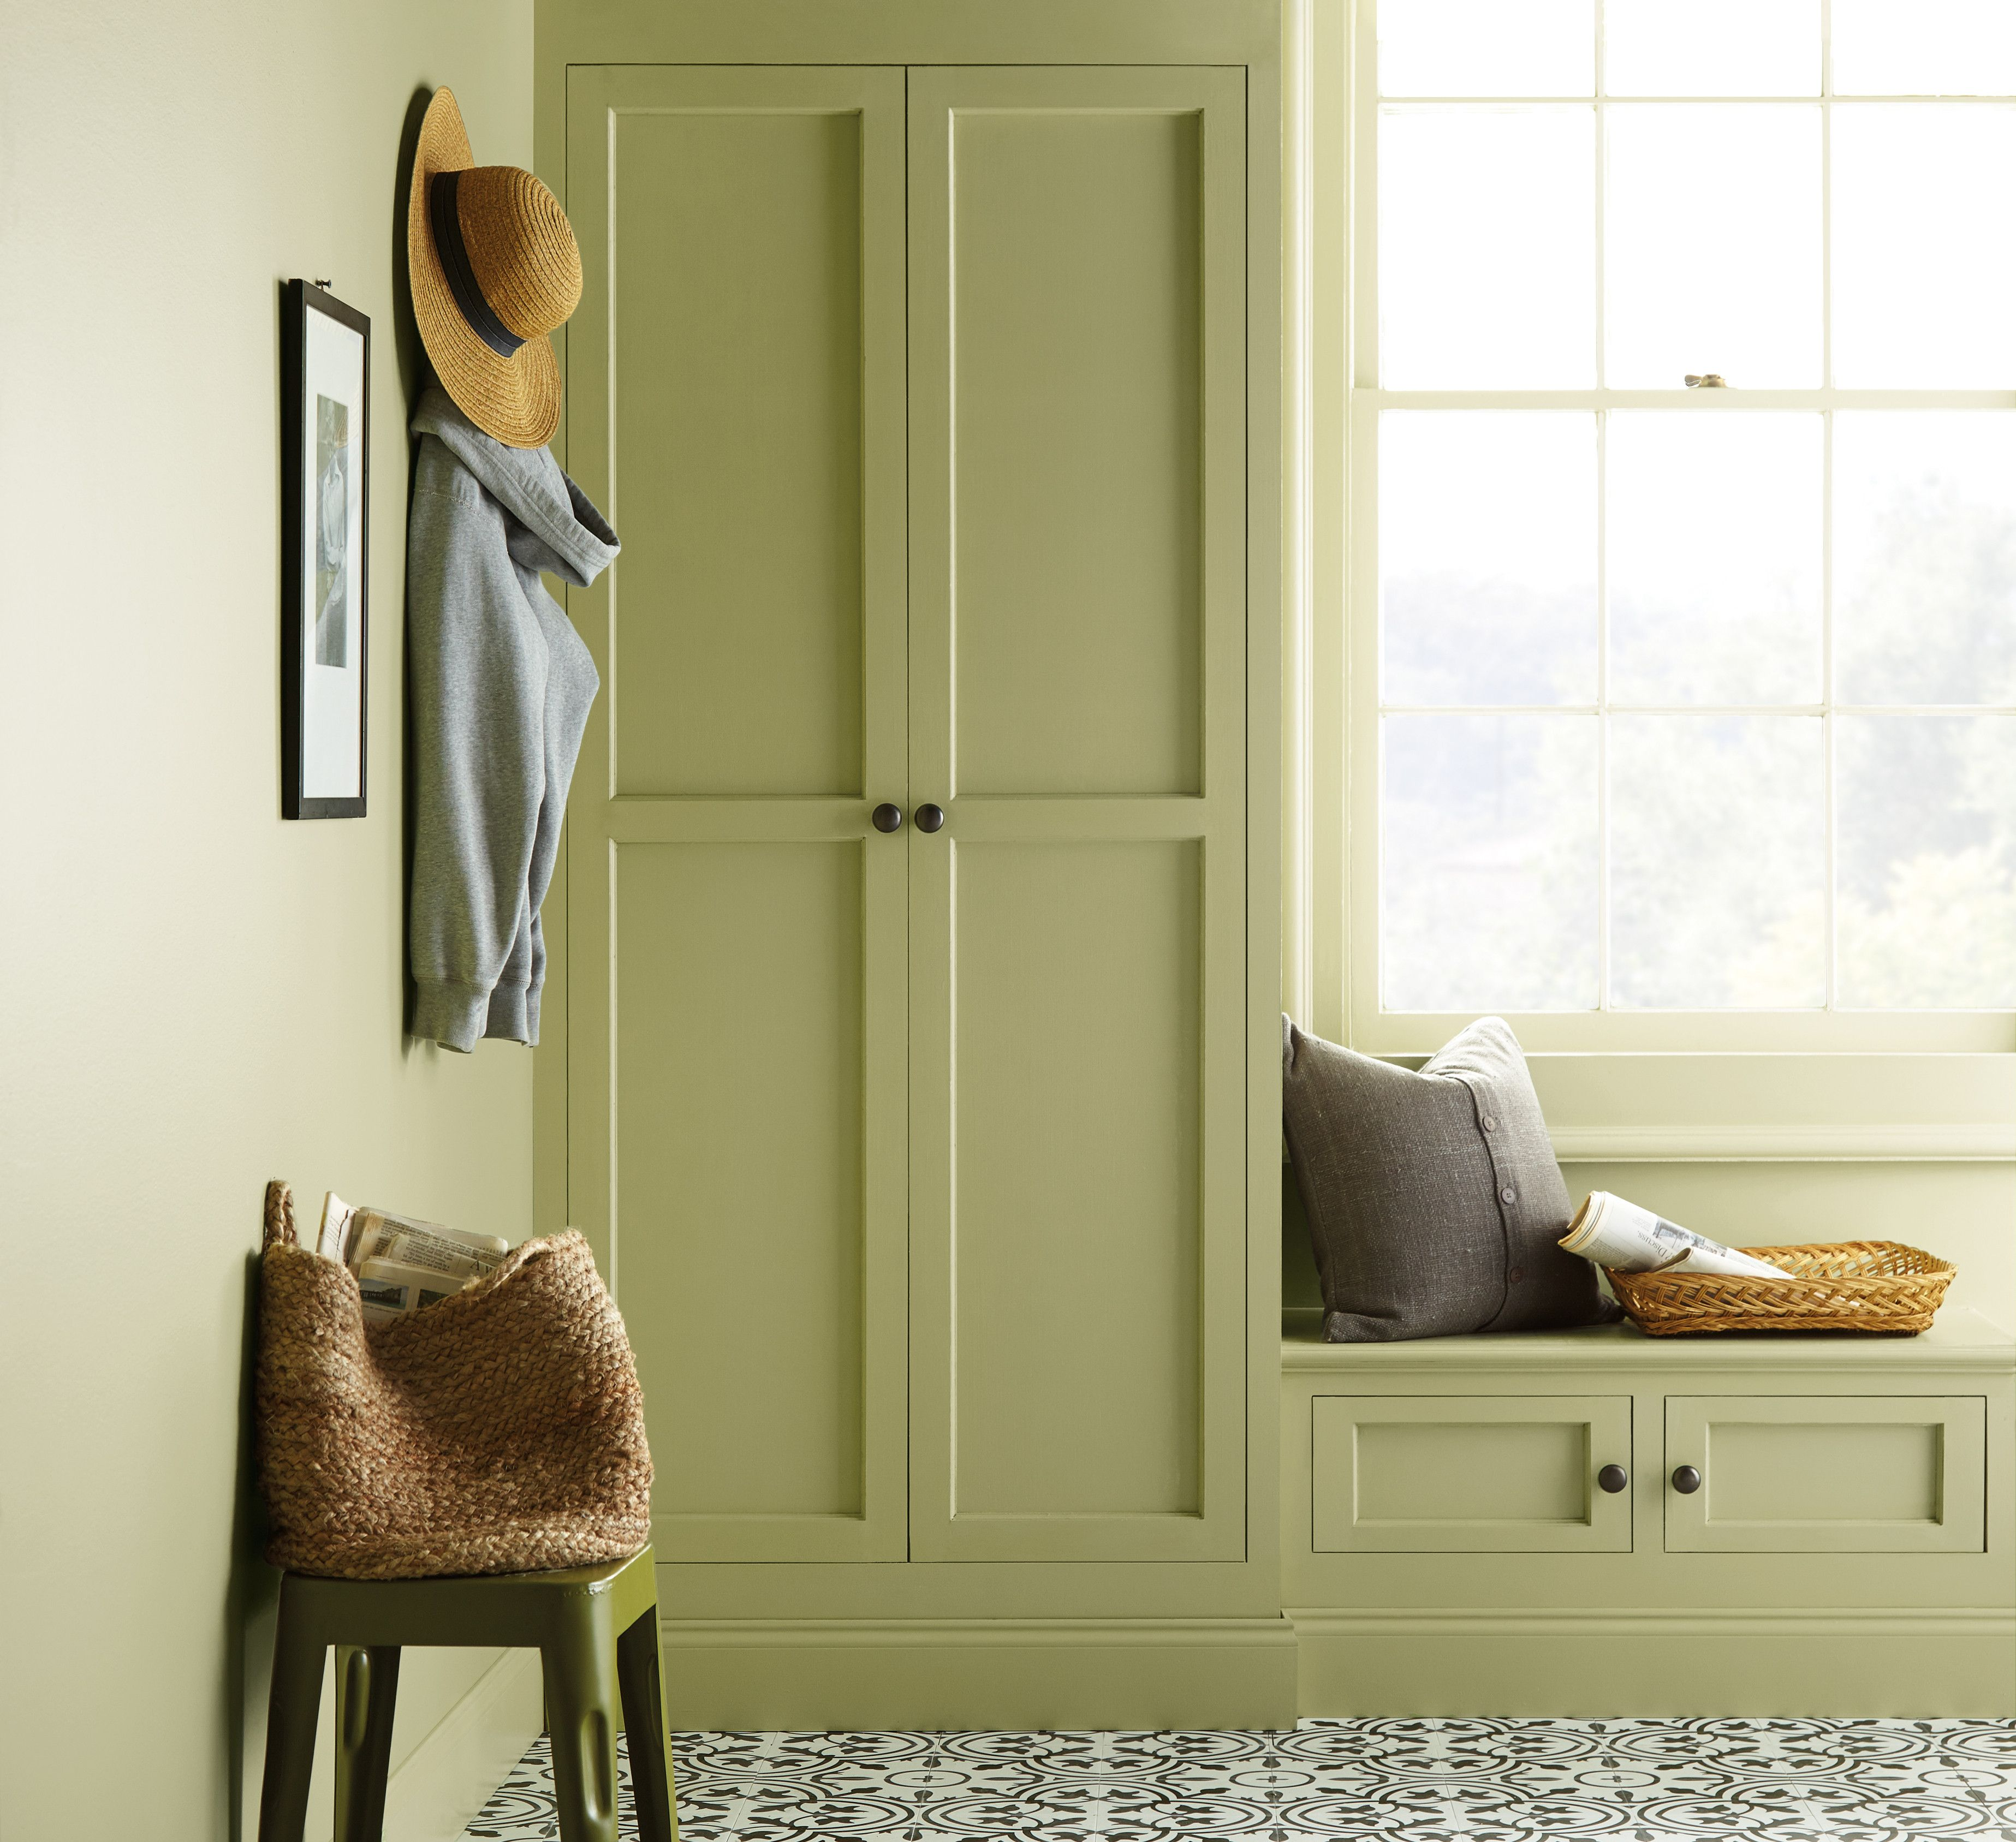 Behr Paint S 2020 Color Of The Year Is Back To Nature Green 2020 Paint Color Trends